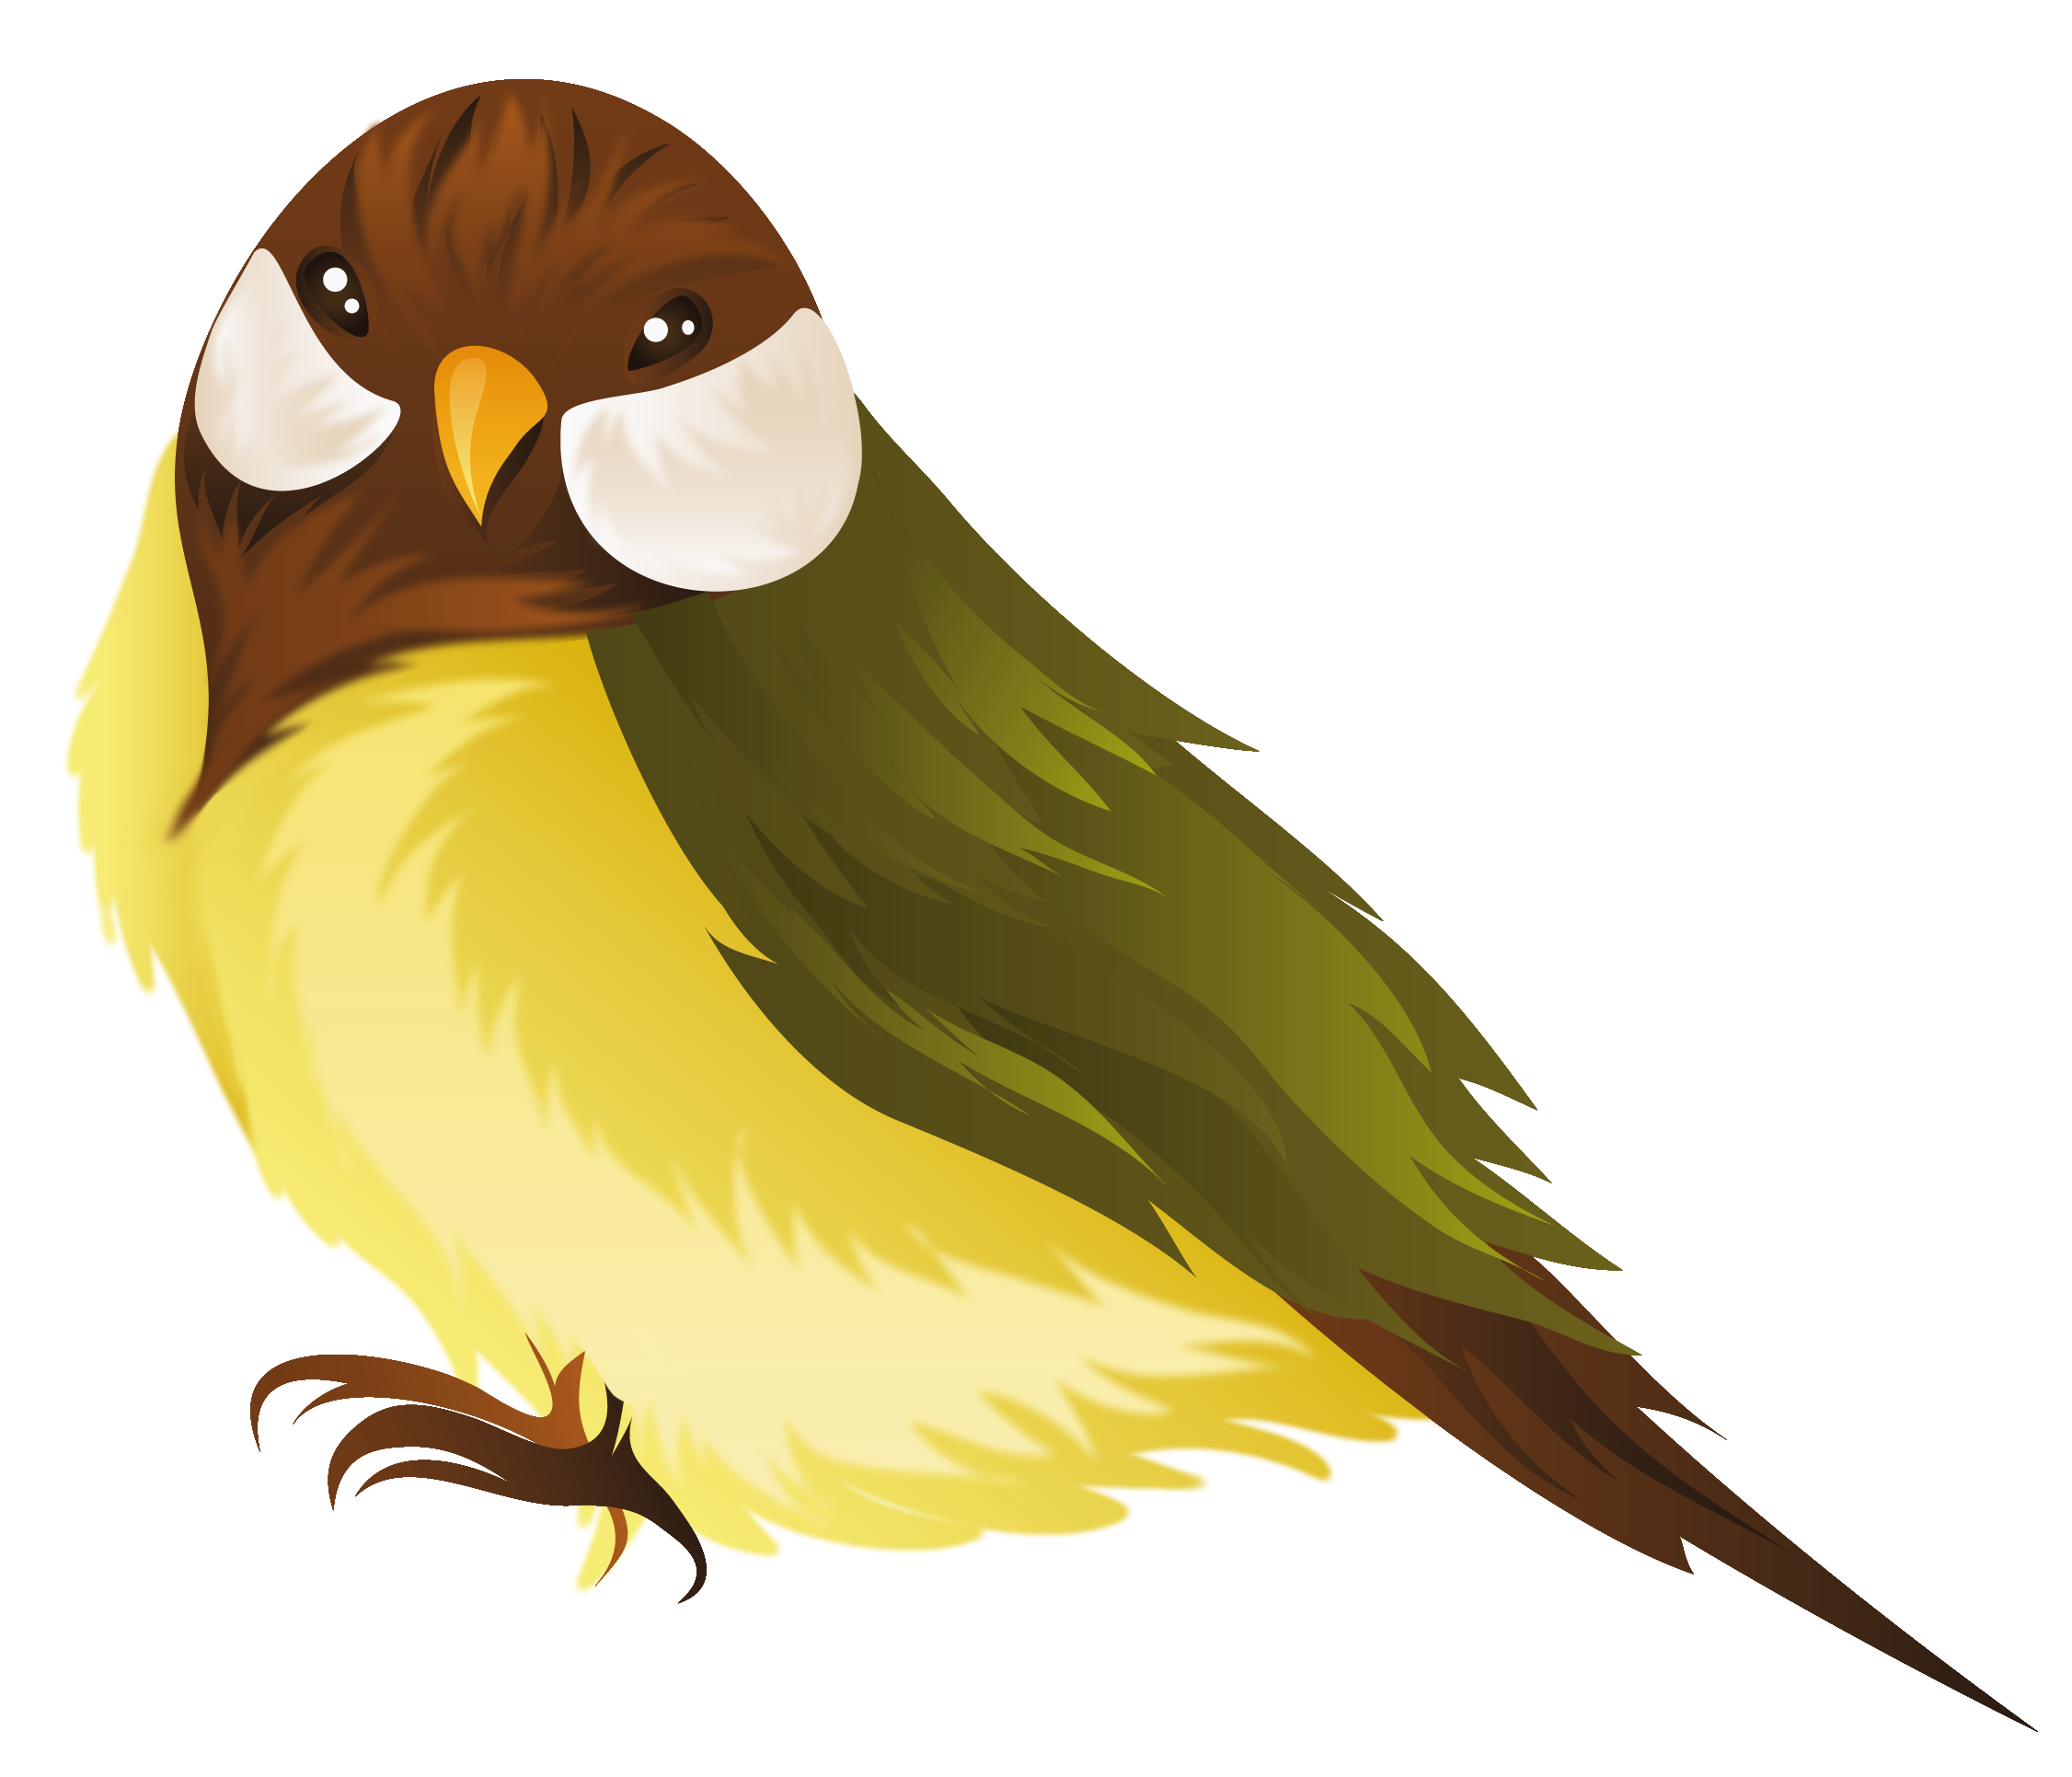 Parrot clipart real Png Birds Real Real birds